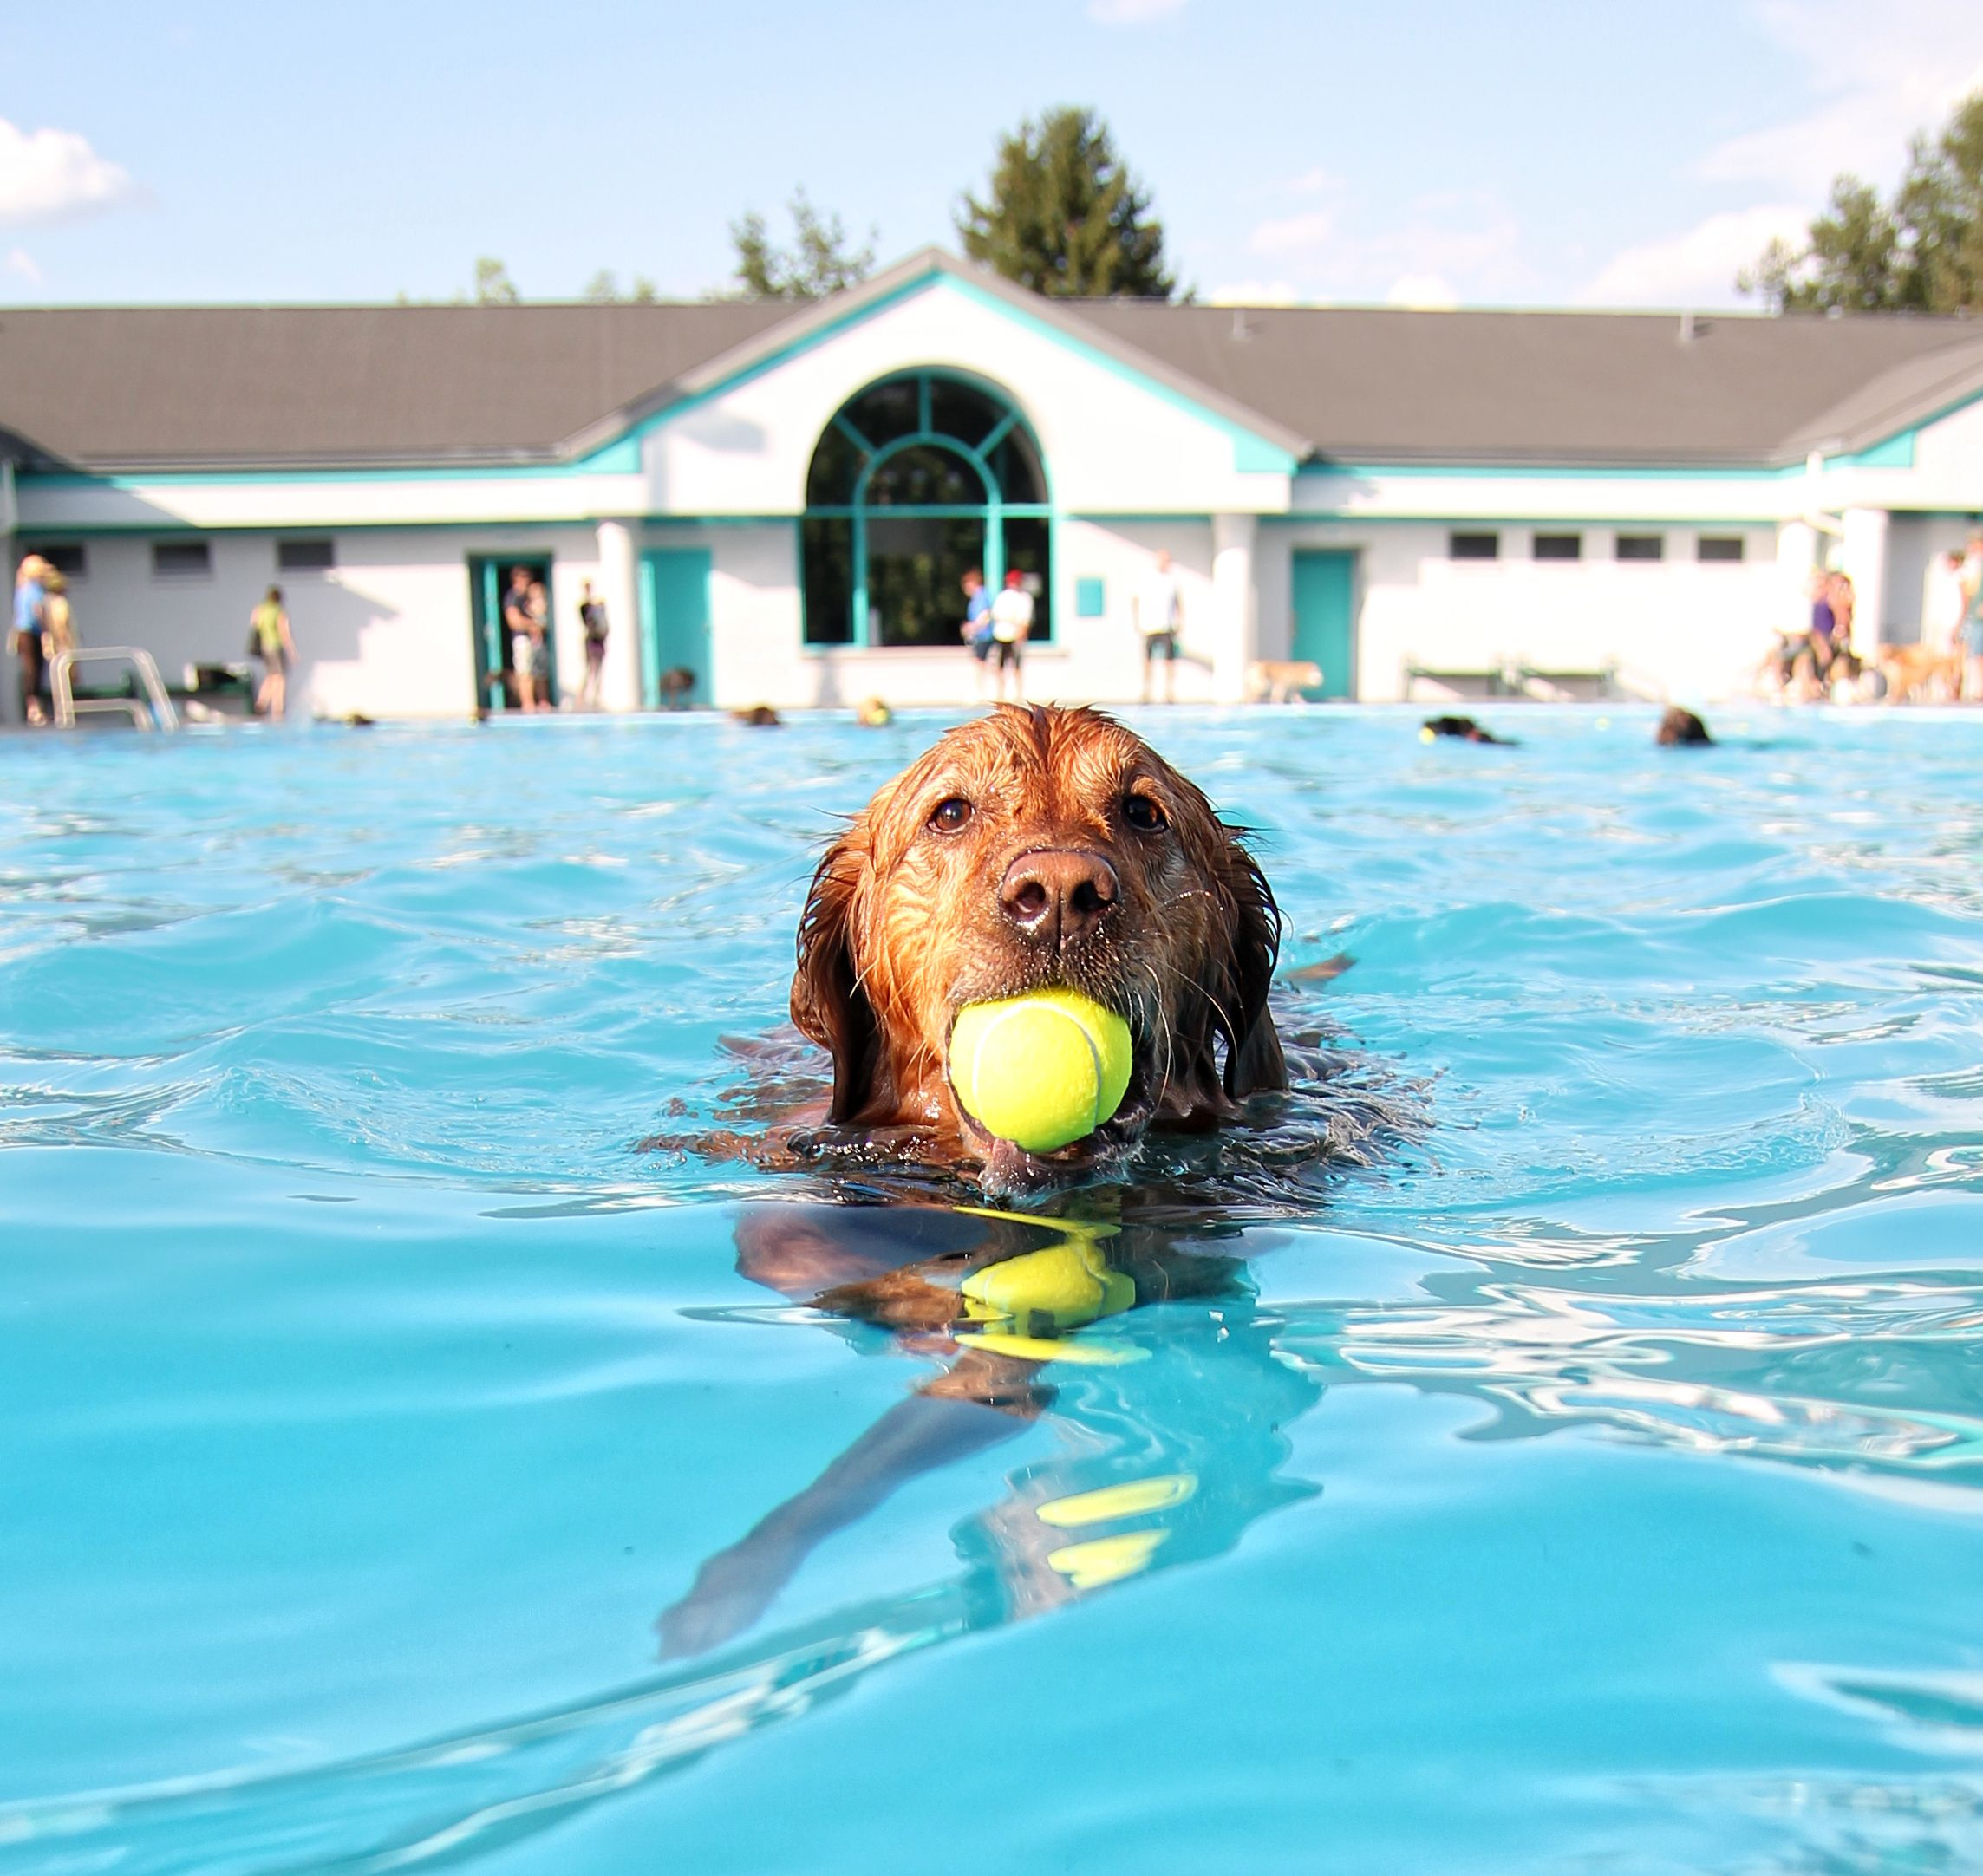 If a dog is struggling to swim, he may accidentally inhale